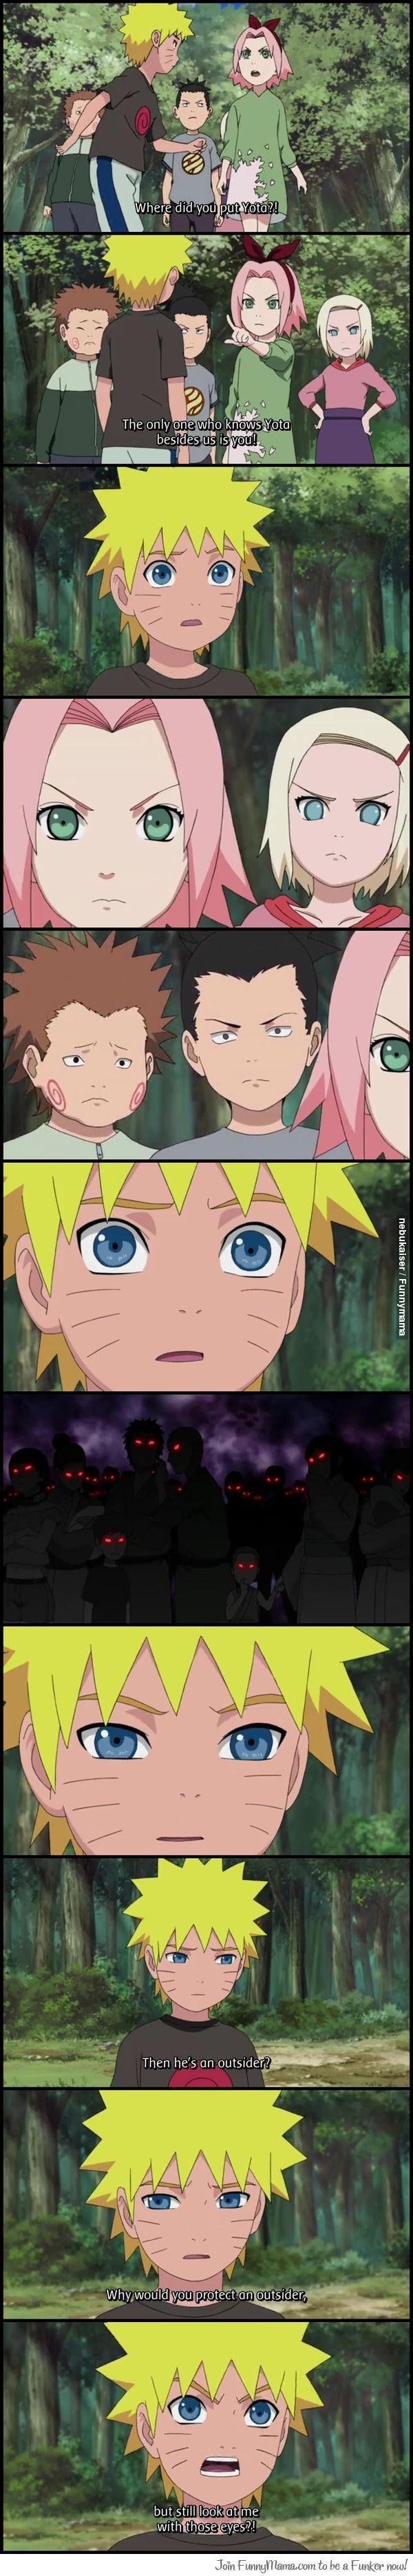 Naruto ~~ This is so sad!!! And what really gets me is how Choji is the only one not looking at him maliciously...